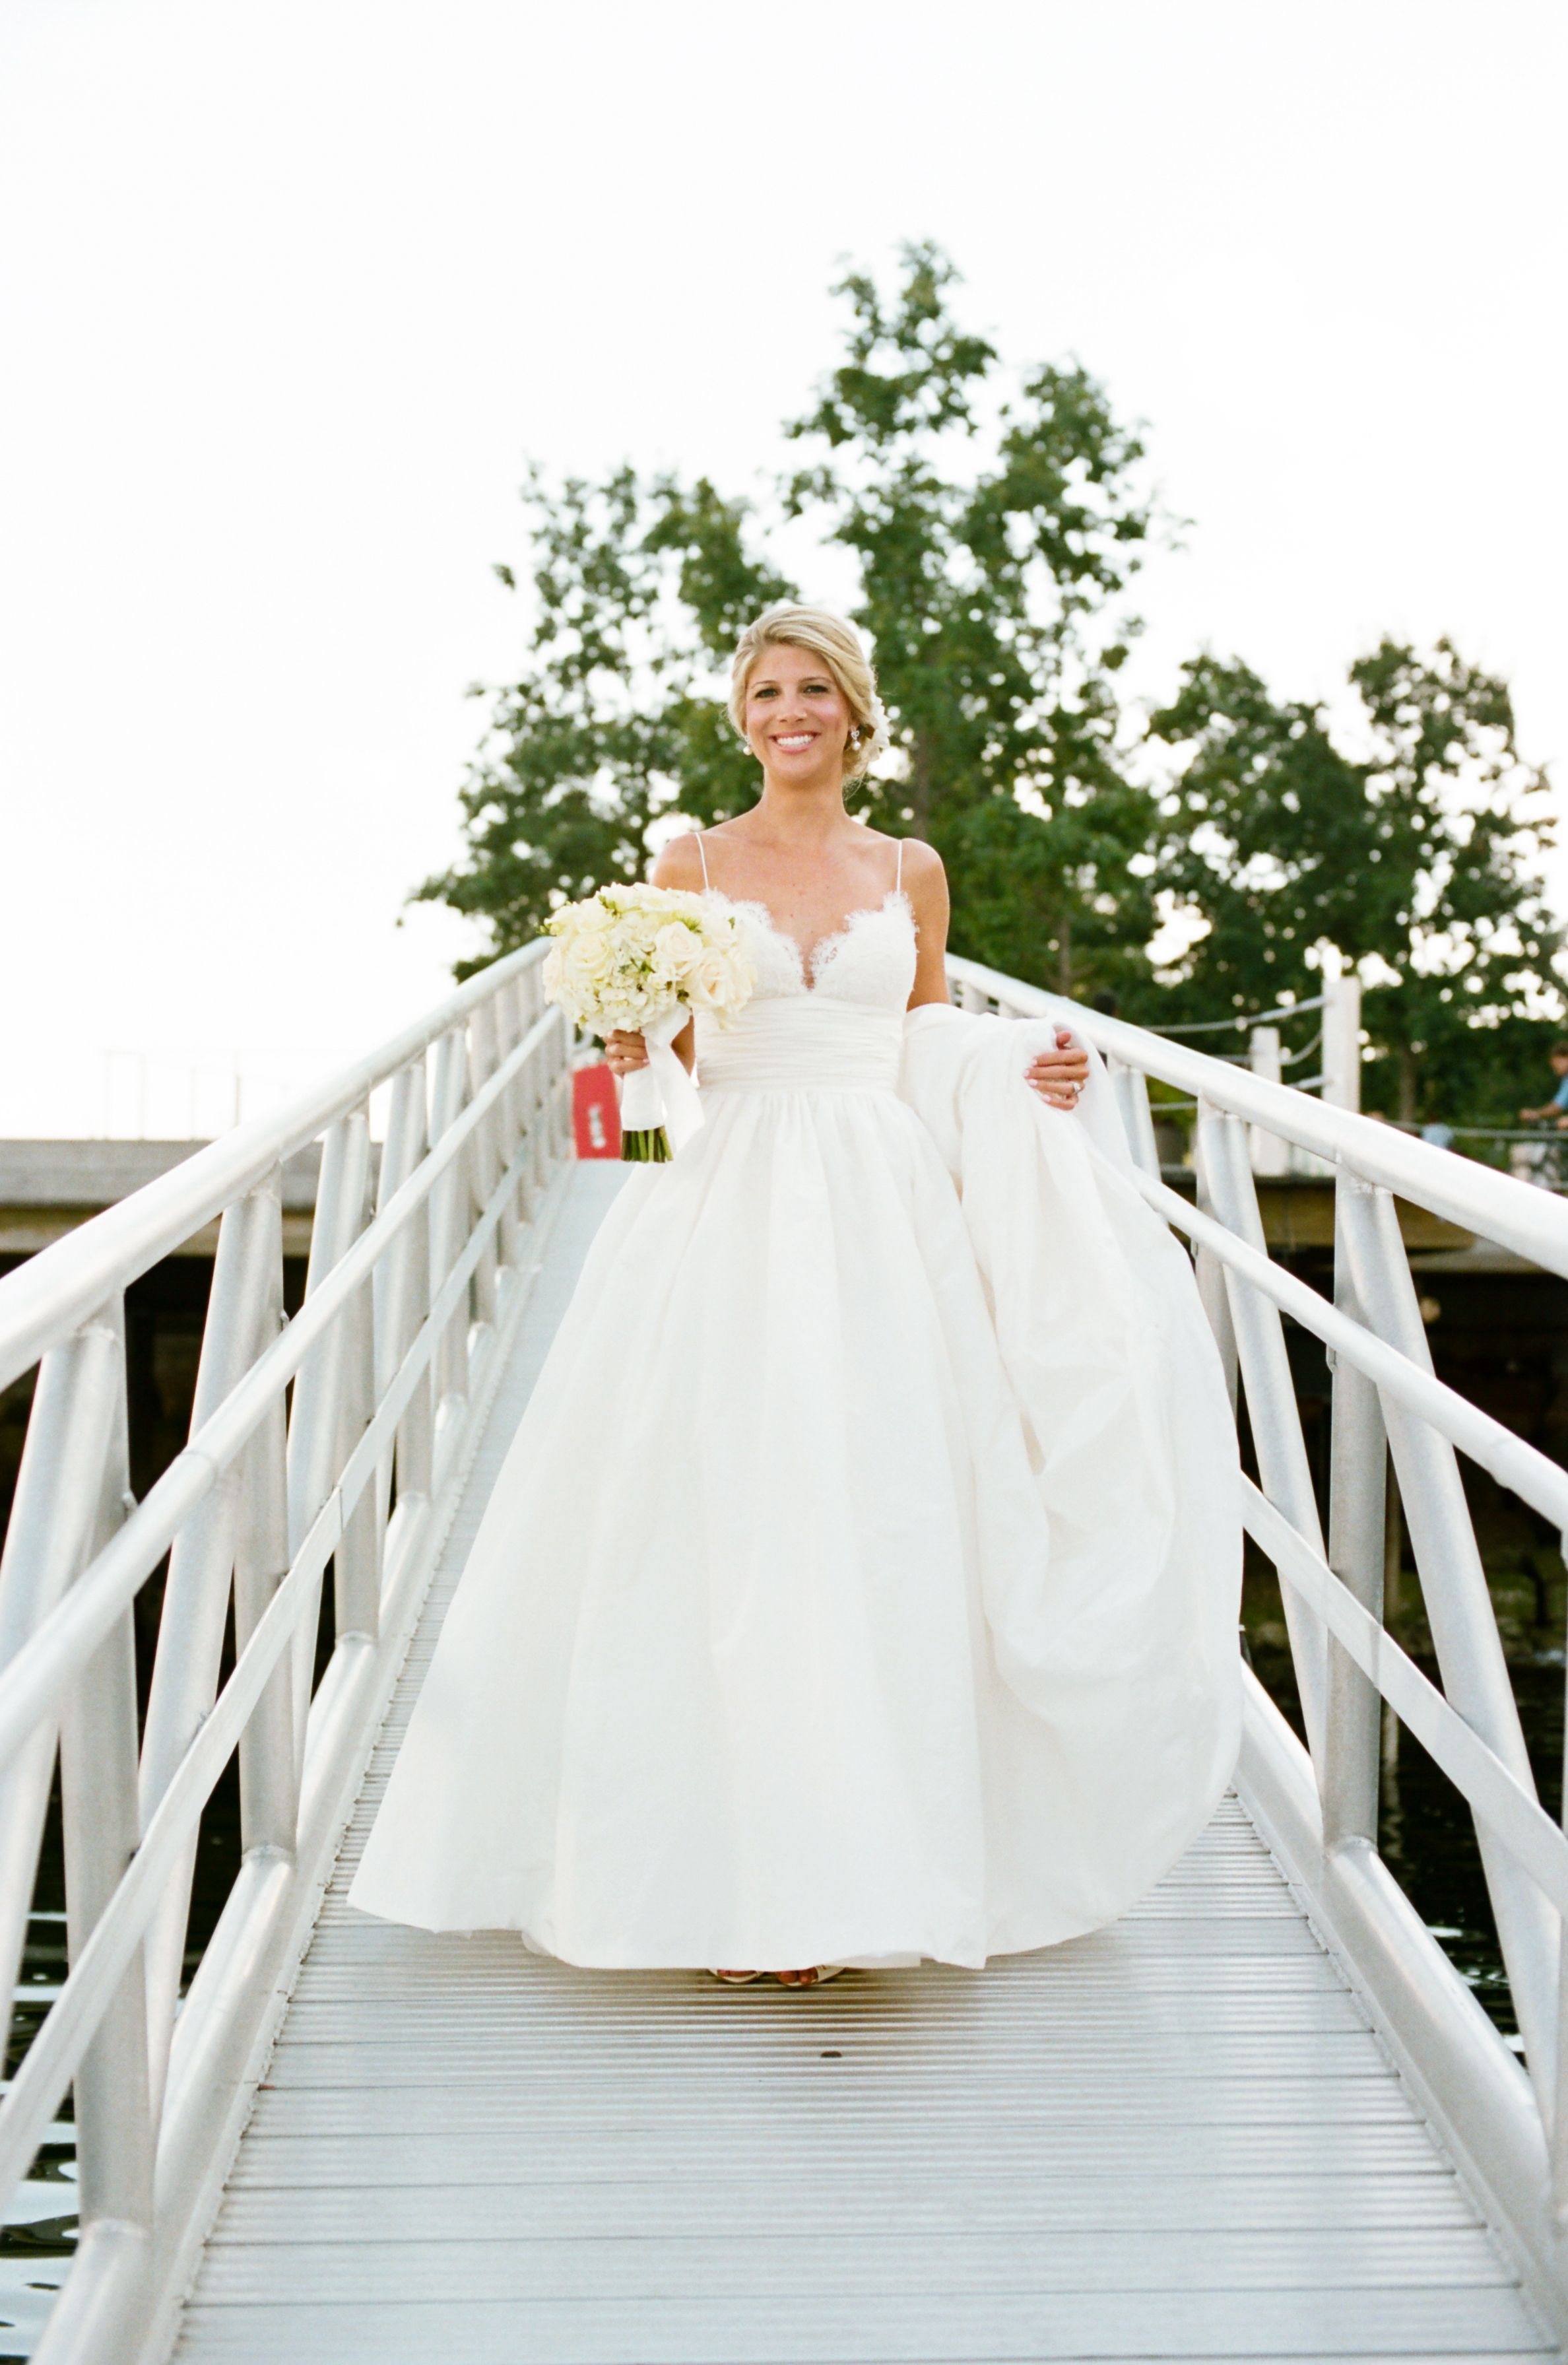 I M Selling My Stunning Amsale Coco Wedding Dress And Veil I Adore This Dress It S Too Beautiful Not To Be Wo Wedding Dresses Coco Wedding Dress Alencon Lace